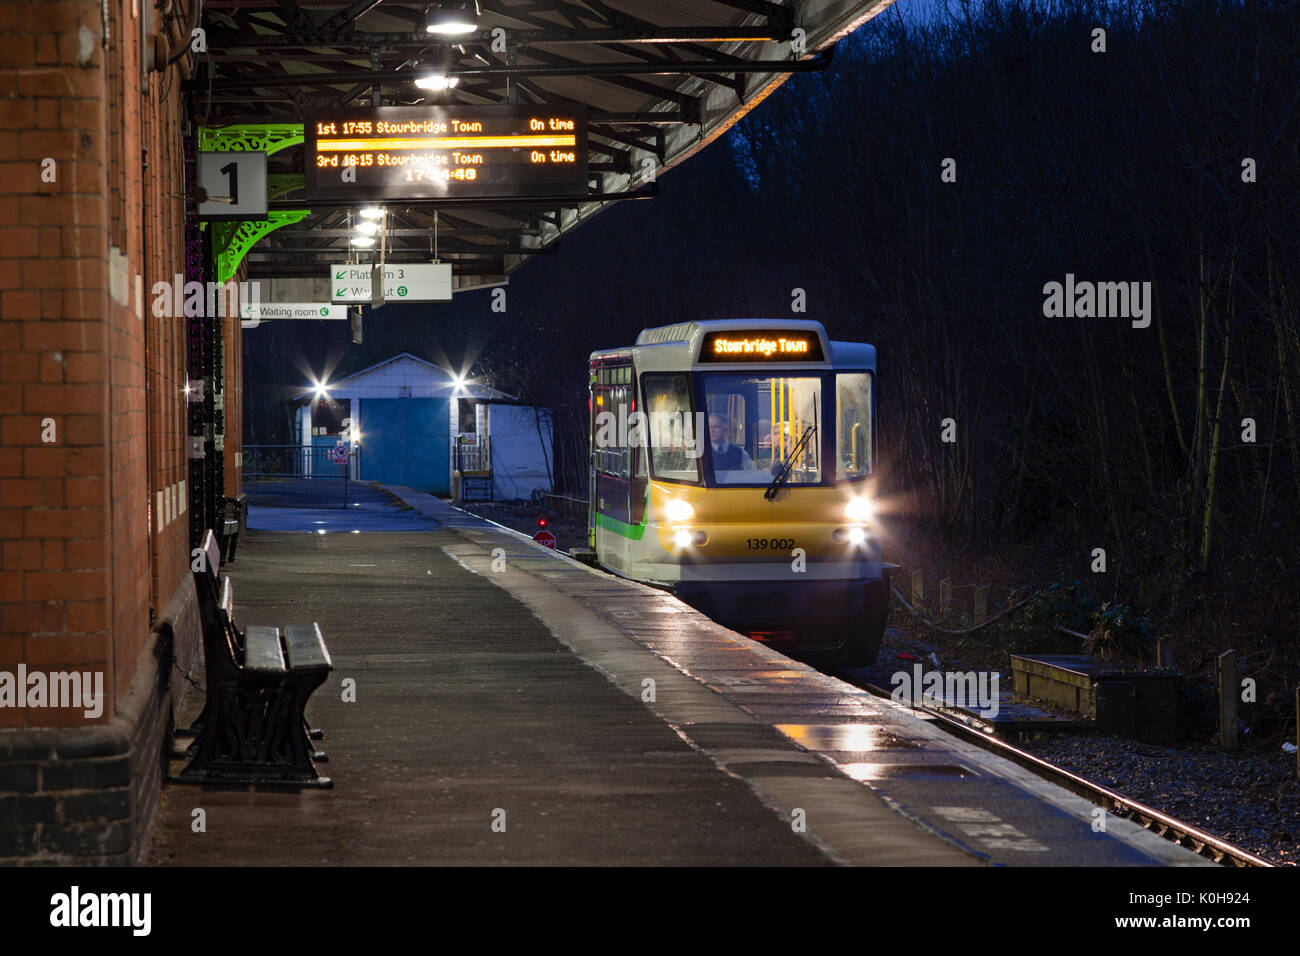 The 1755 Stourbridge Jn - Stourbridge Town awaits departure from Stourbridge Junction formed of a Parry people mover PPM 60 - Stock Image